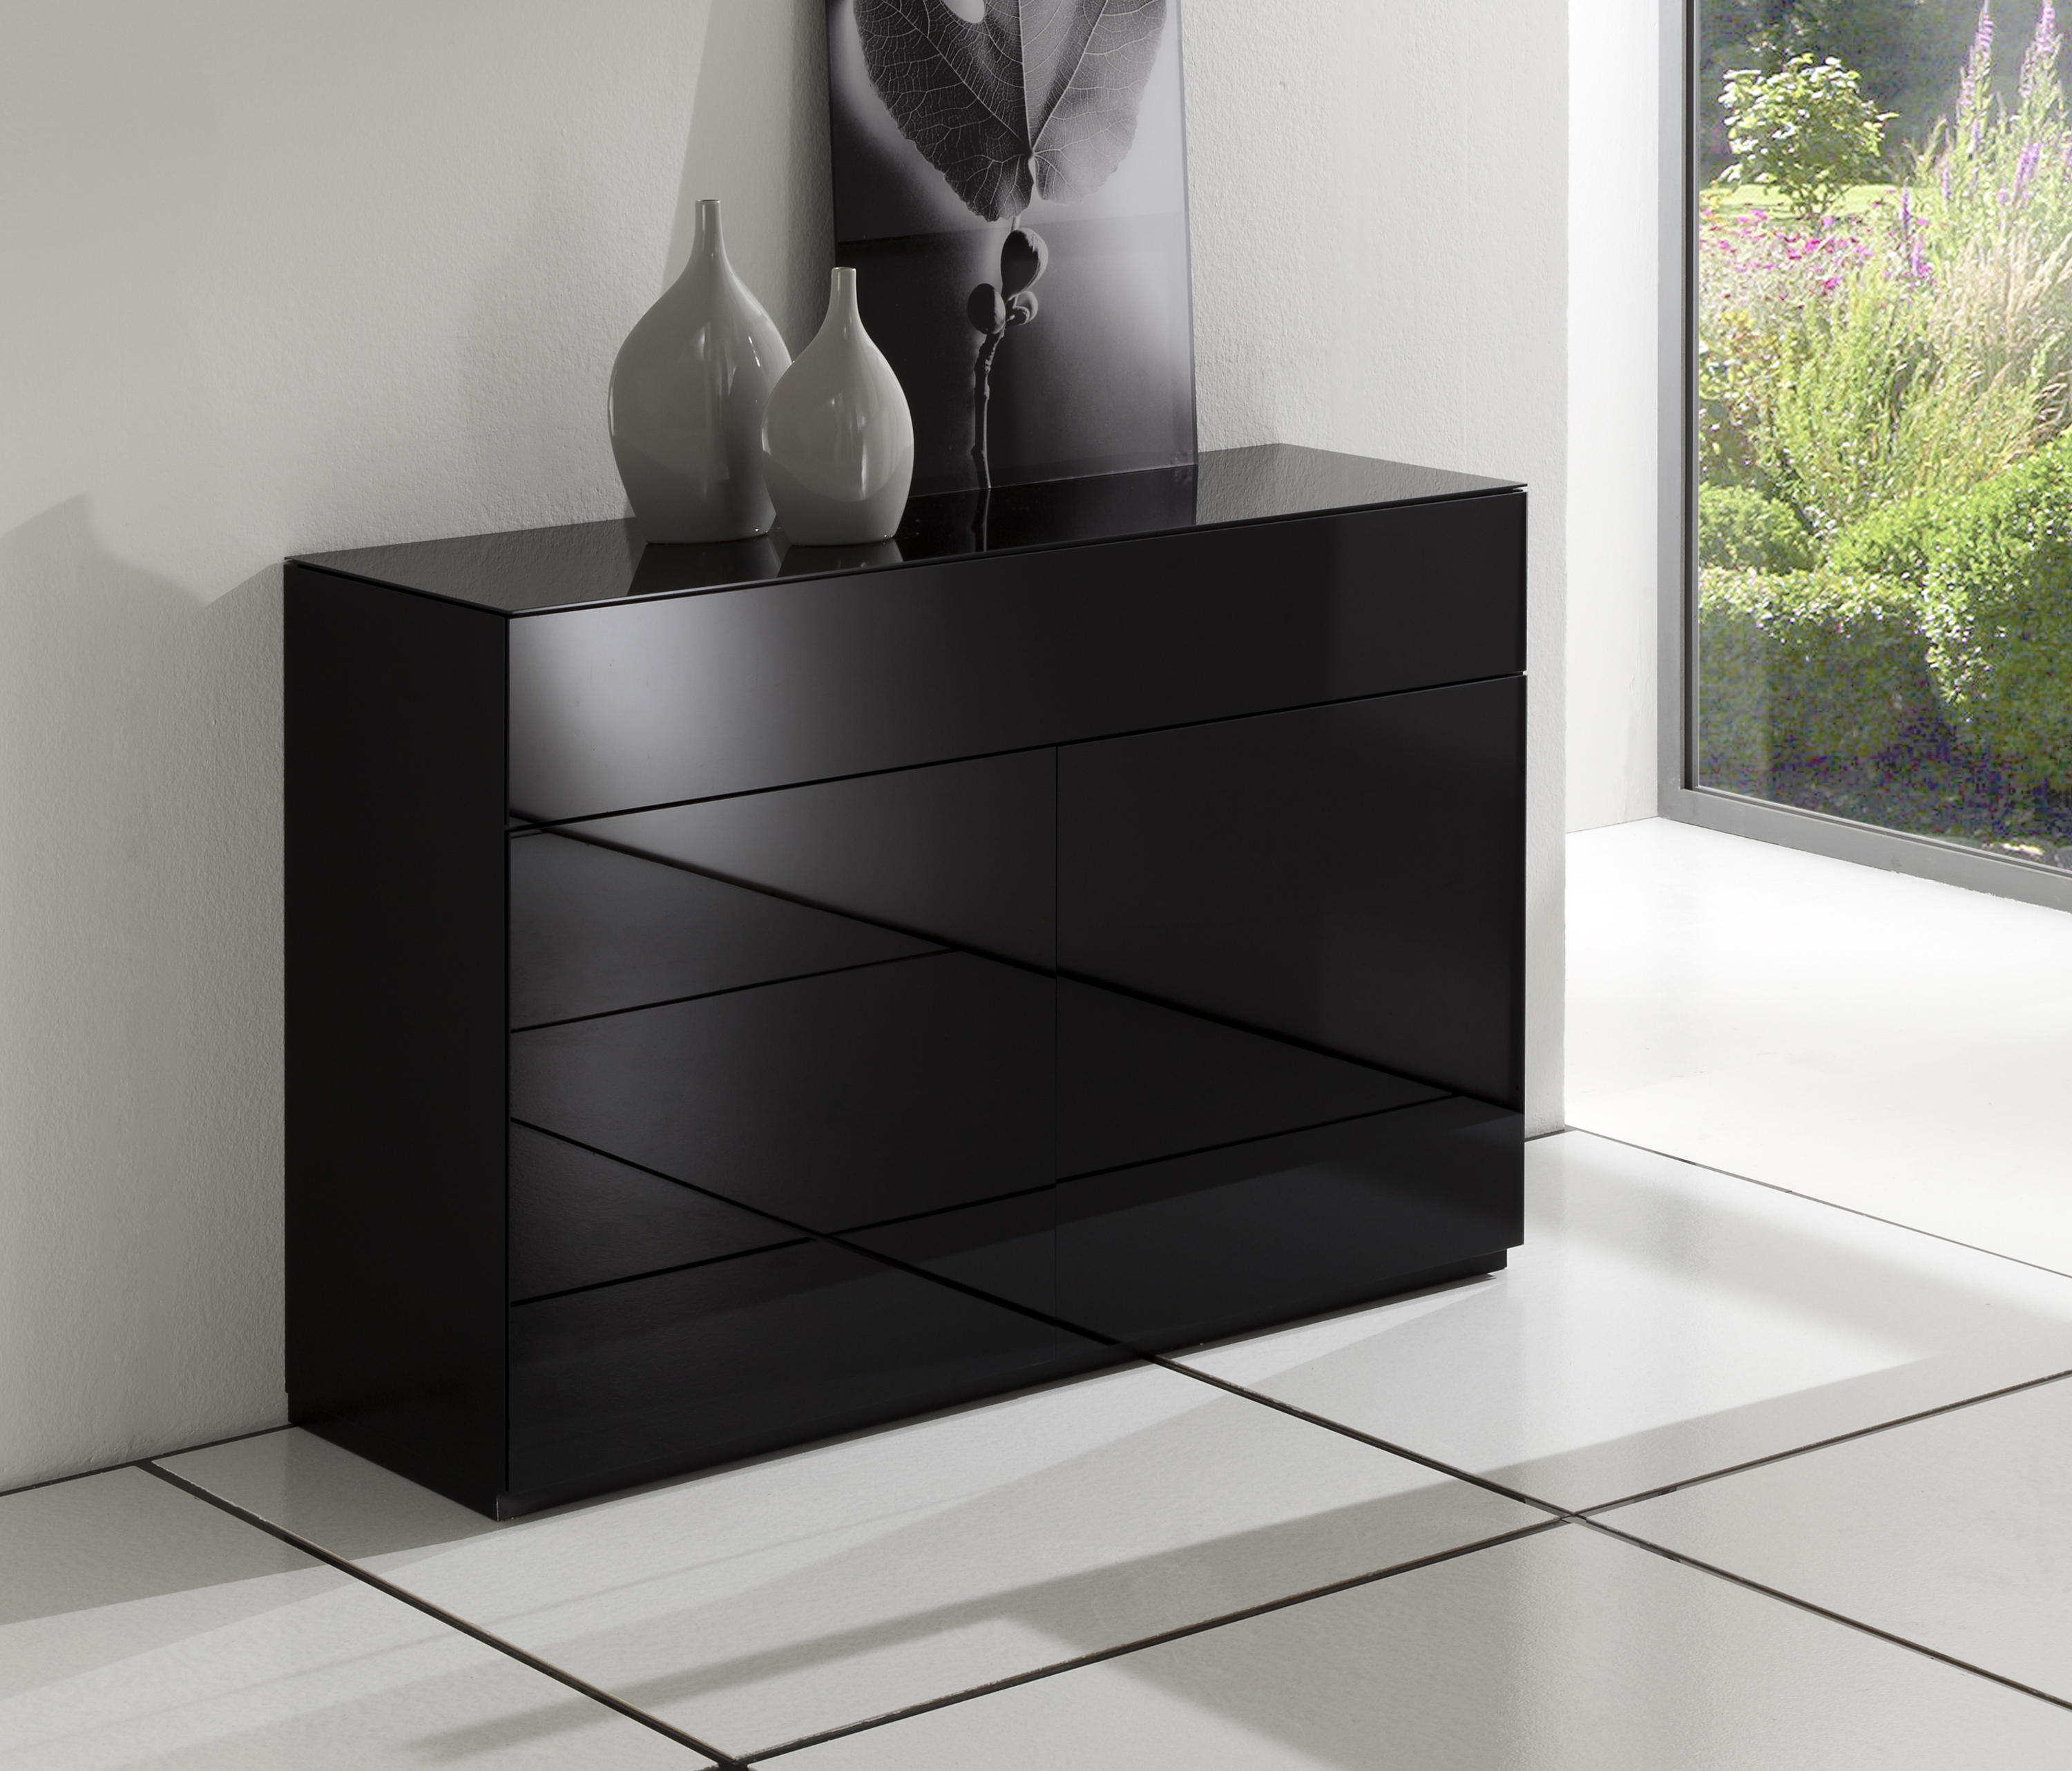 rooming nussbaum schwarz sideboards kommoden von die collection architonic. Black Bedroom Furniture Sets. Home Design Ideas